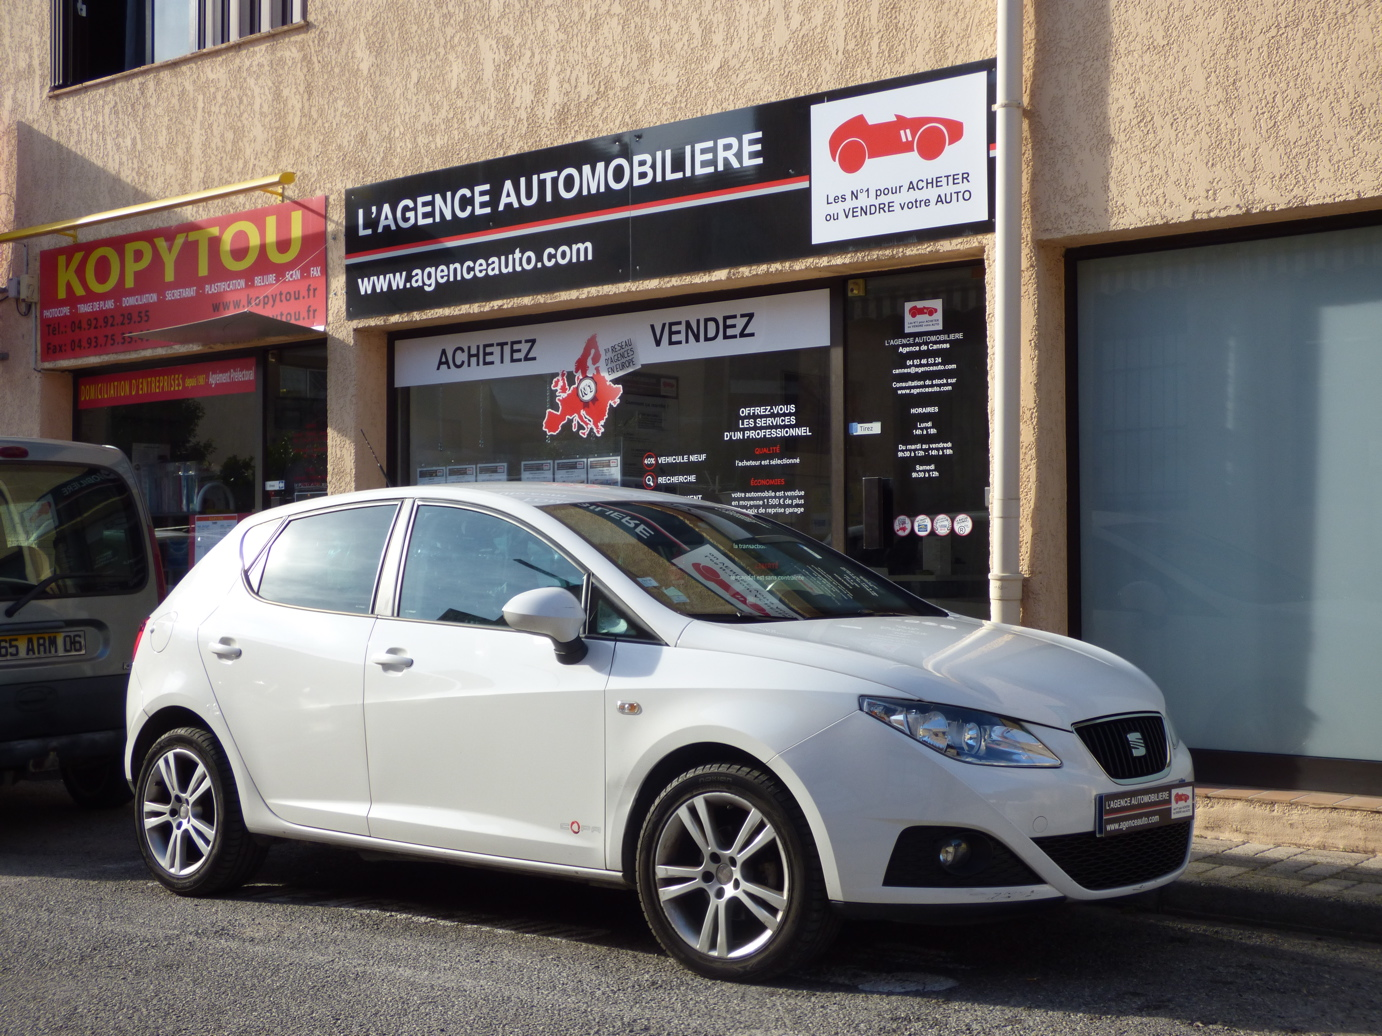 seat ibiza 1 6 tdi 90 fap style copa occasion cannes pas cher voiture occasion alpes maritimes. Black Bedroom Furniture Sets. Home Design Ideas